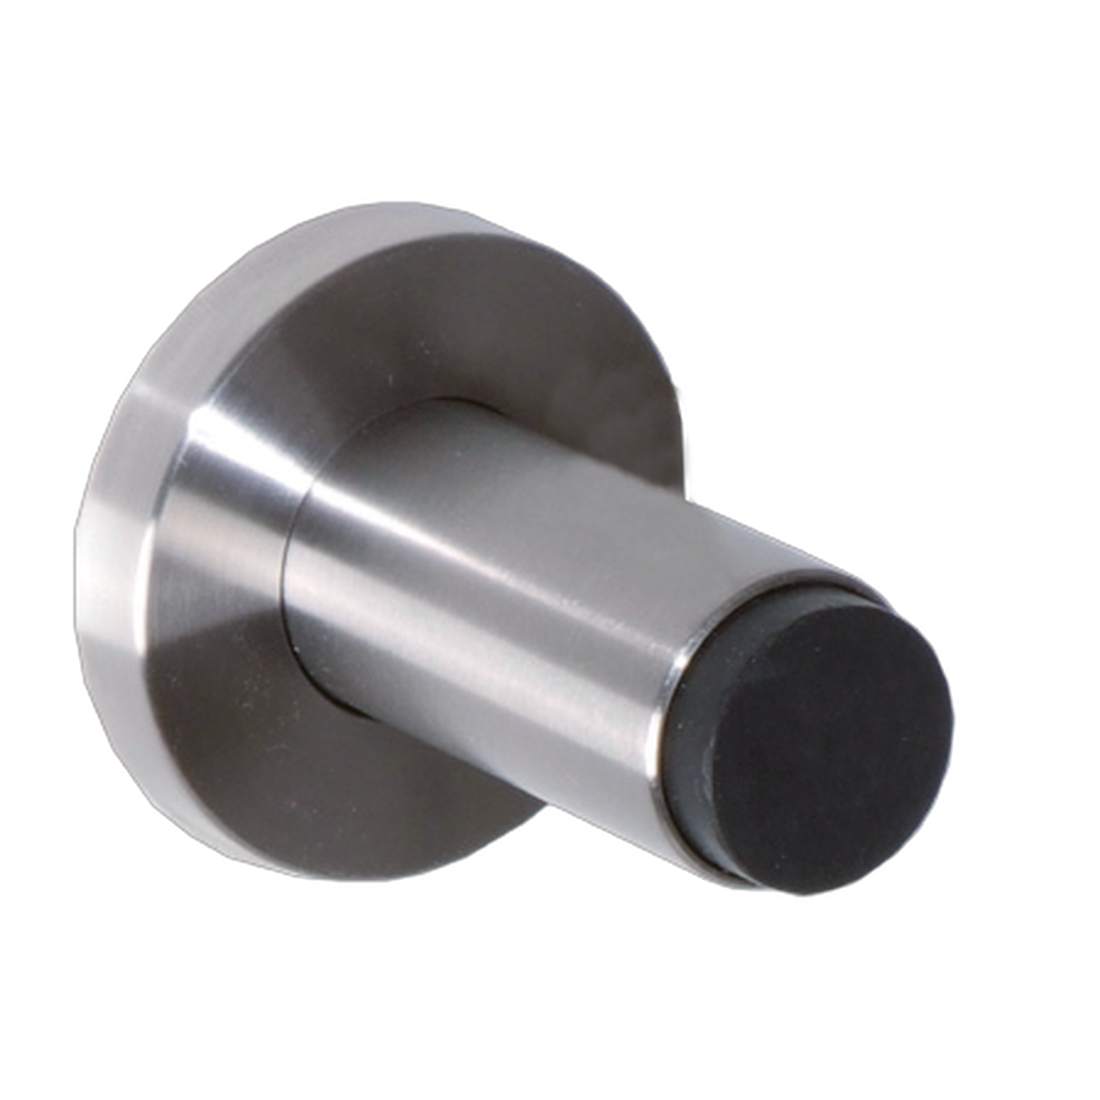 DOOR STOPPER, FOR WALL MOUNTING, ø 22MM, L: 95MM, MOUNTING PLATE